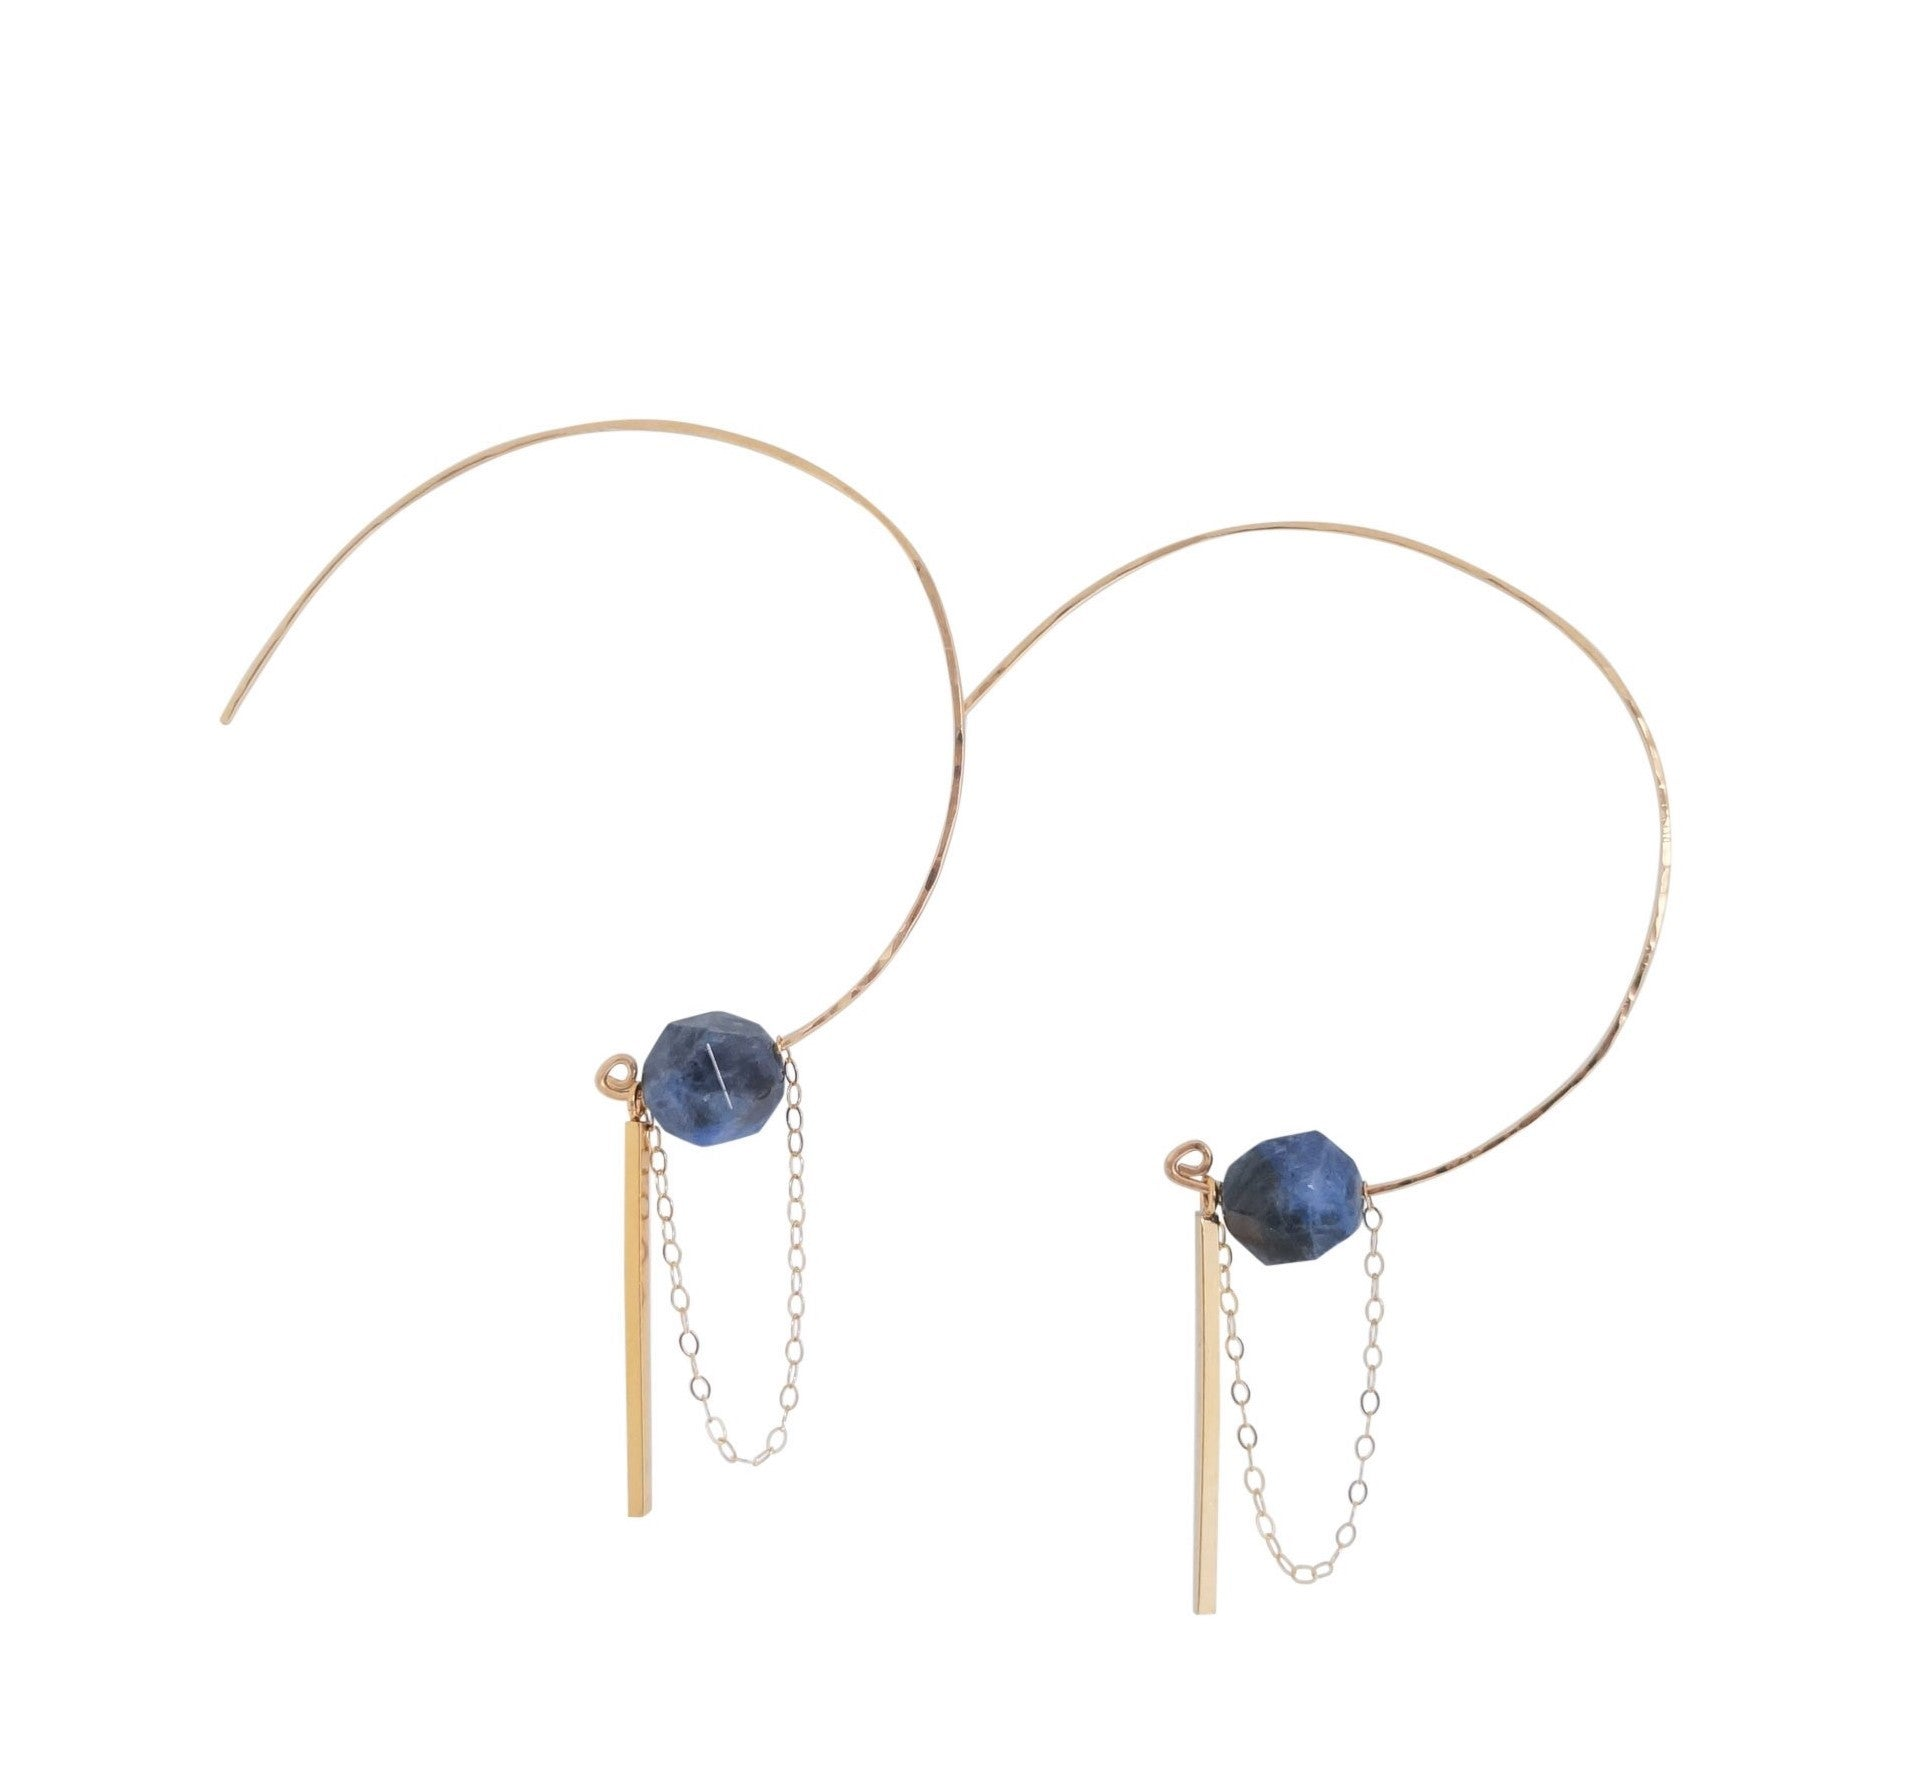 Trust Earrings - Carolyn Hearn Designs